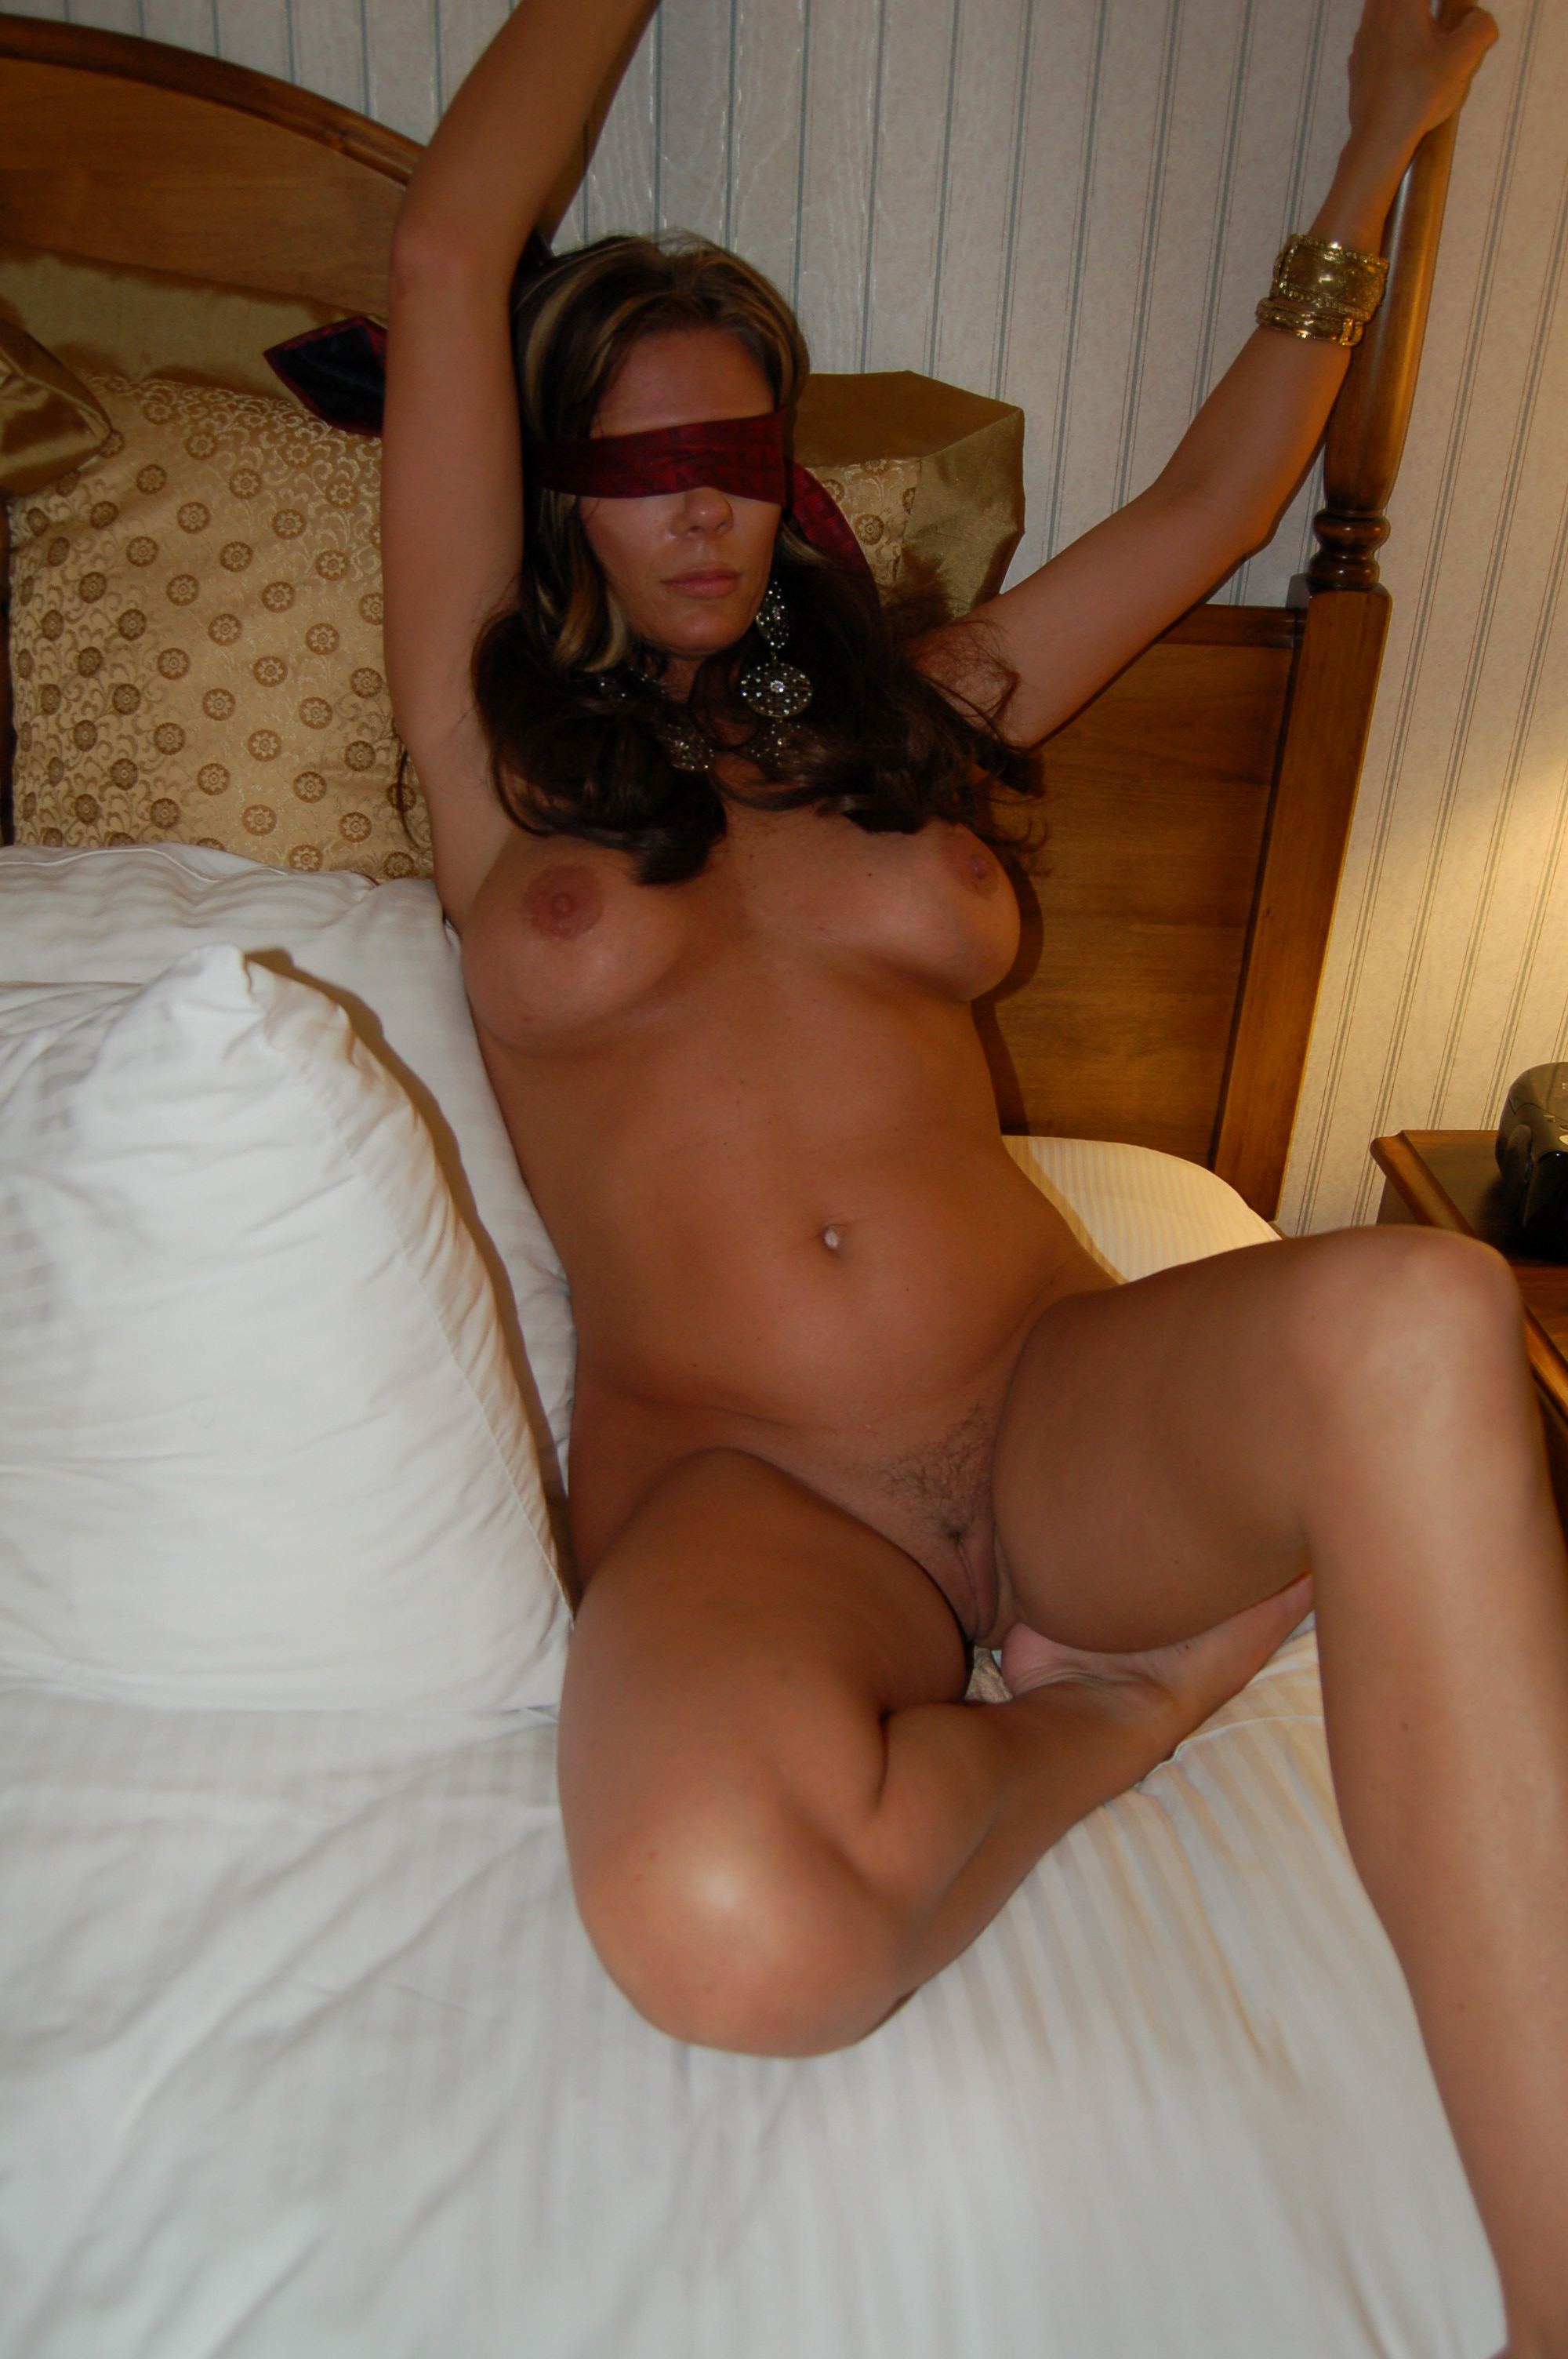 Hot milf showing off red